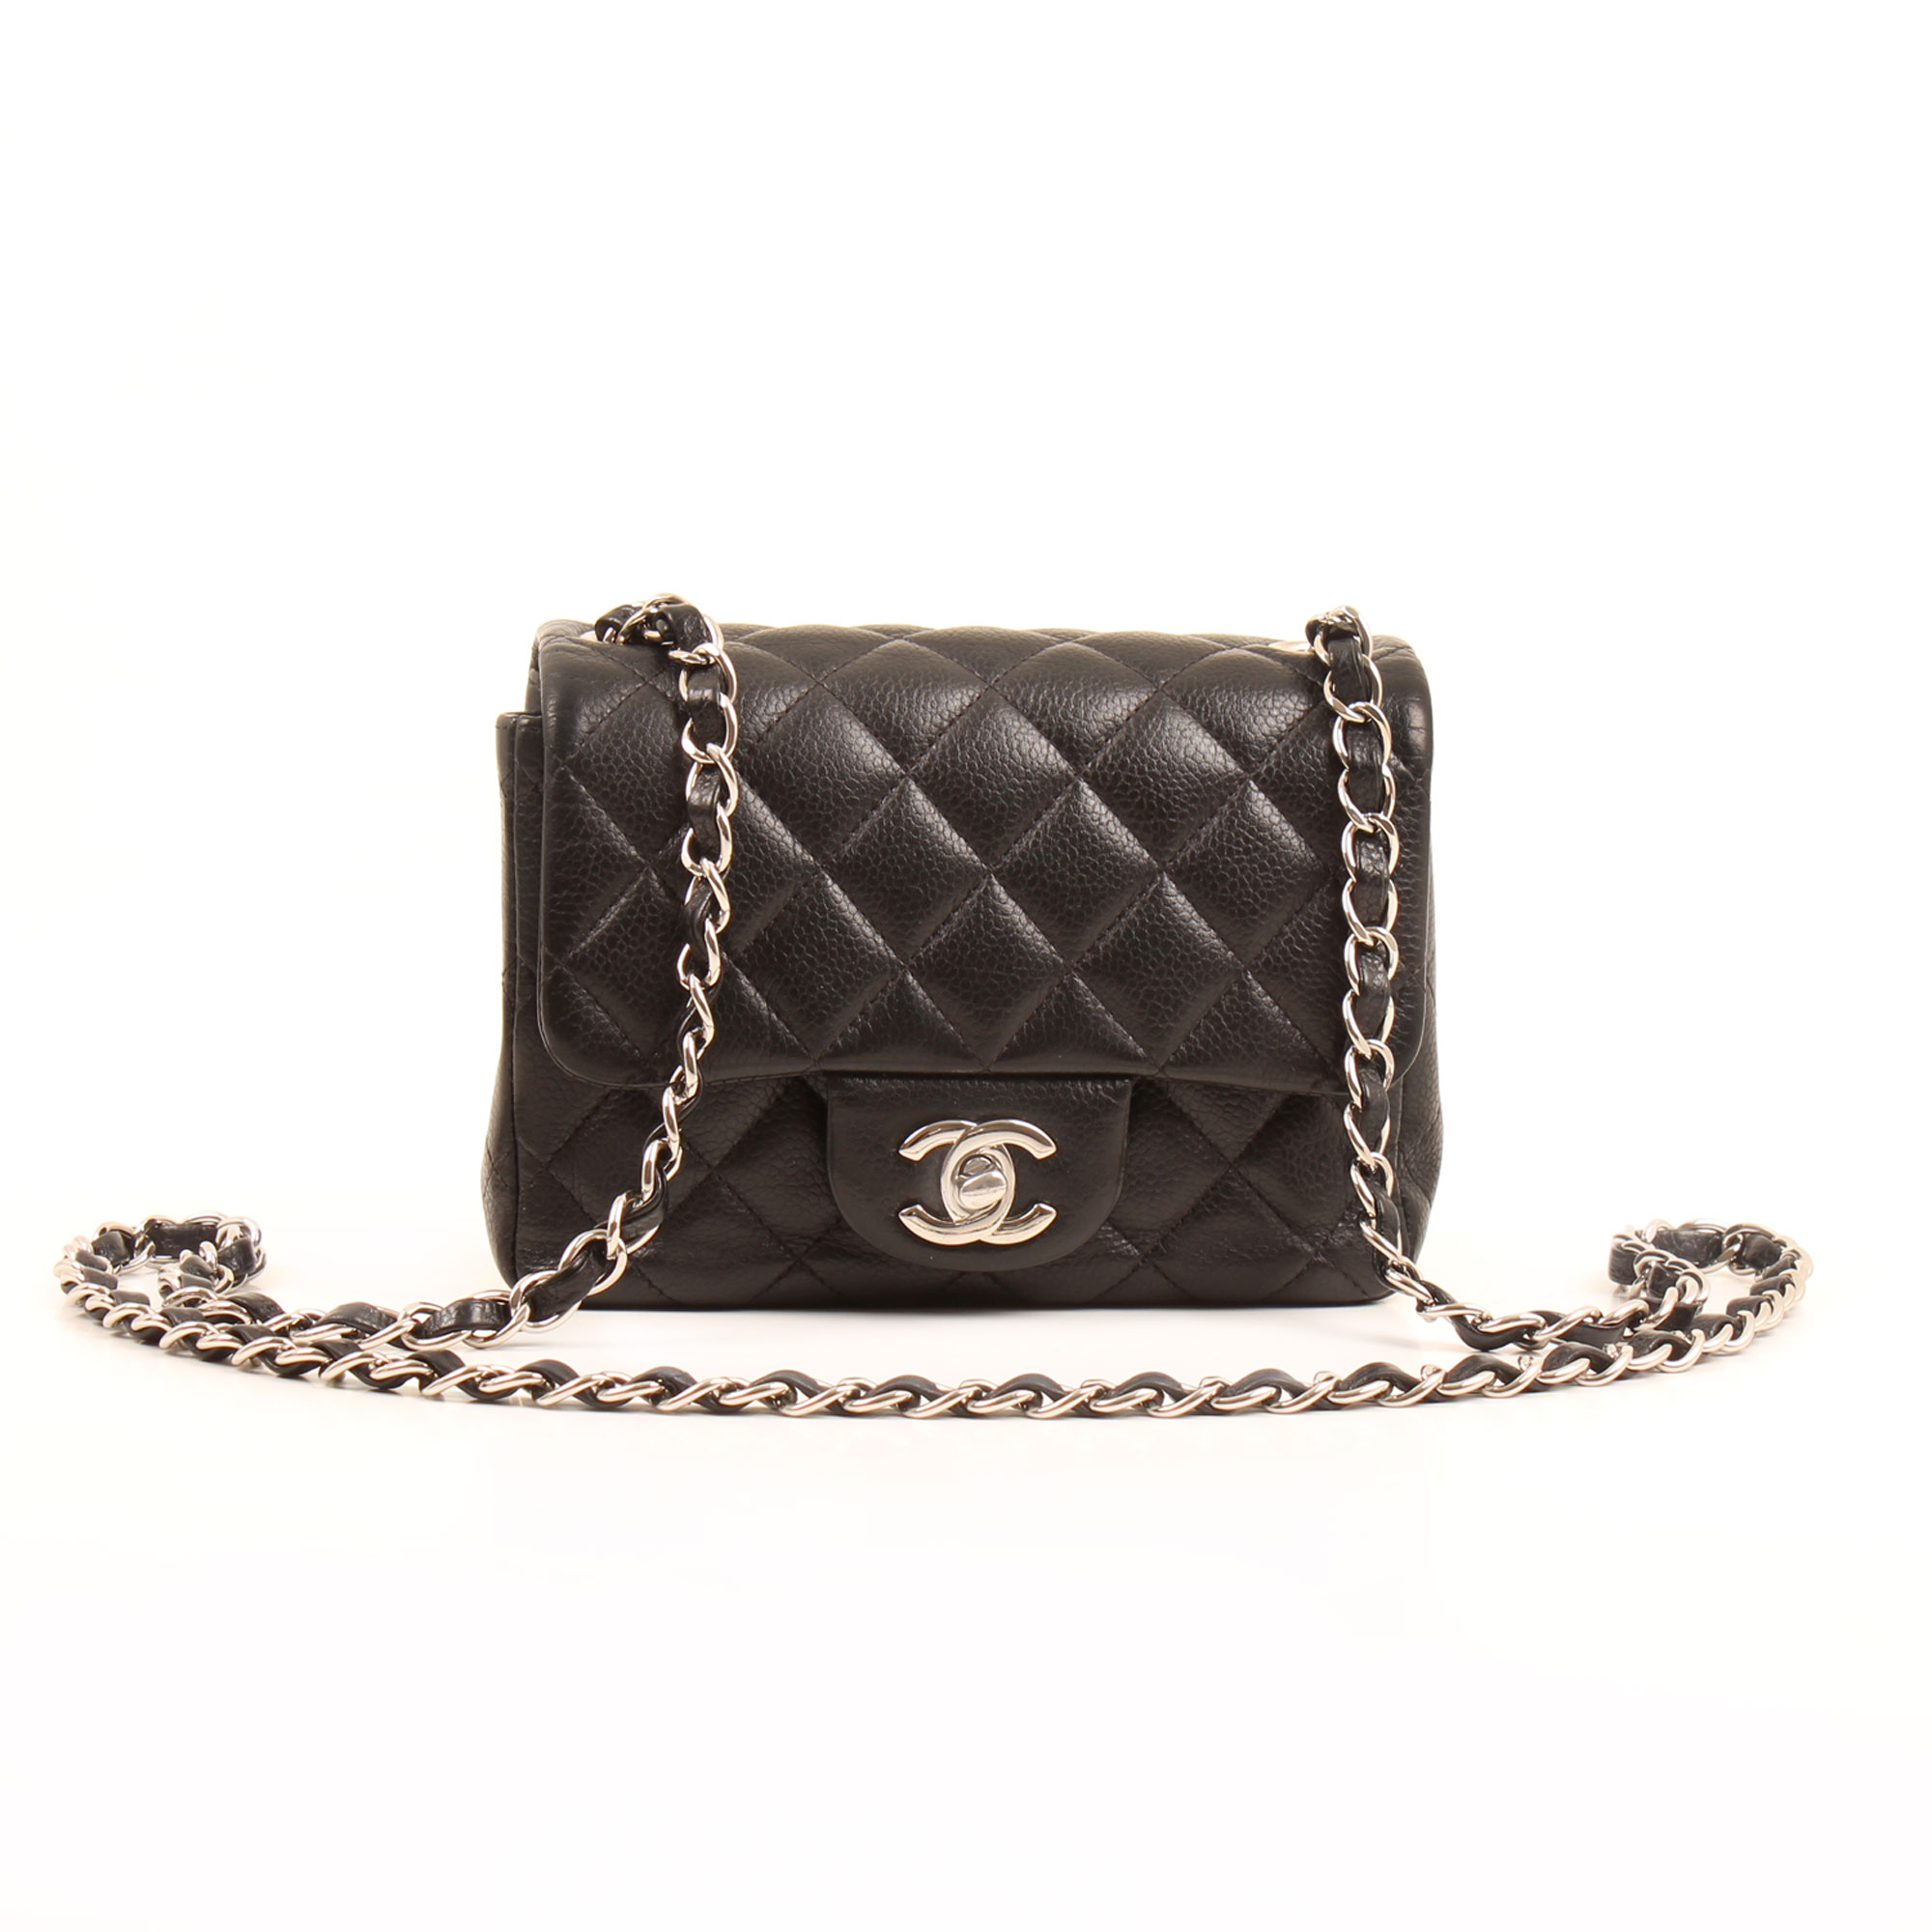 62e10df78ddd Chanel Timeless Mini Bag Caviar Black I CBL Bags